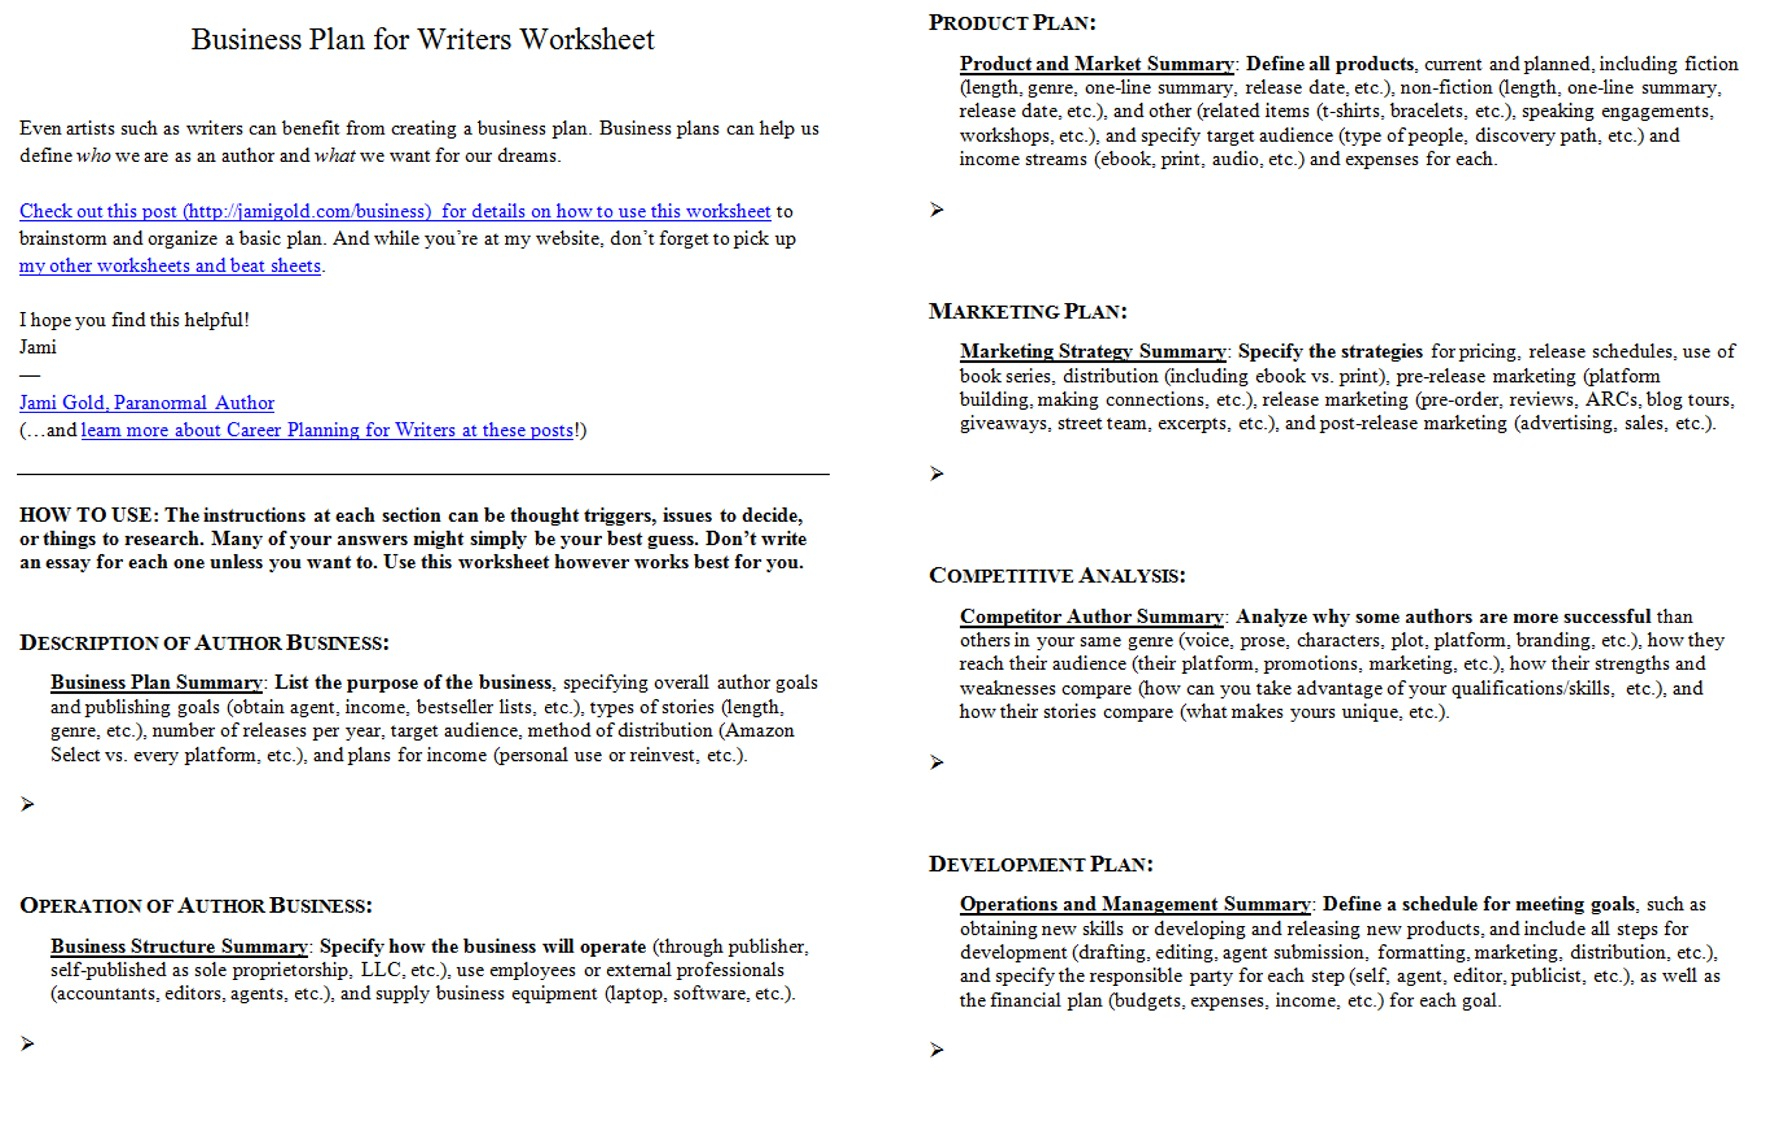 Aldiablosus  Pleasant Worksheets For Writers  Jami Gold Paranormal Author With Exciting Screen Shot Of Both Pages Of The Business Plan For Writers Worksheet With Cool Polynomial Practice Worksheet Also Factoring Trinomials By Grouping Worksheet In Addition Worksheets For Th Grade Math And Amphibians Worksheet As Well As They Re There Their Worksheet Additionally Line Symmetry Worksheets From Jamigoldcom With Aldiablosus  Exciting Worksheets For Writers  Jami Gold Paranormal Author With Cool Screen Shot Of Both Pages Of The Business Plan For Writers Worksheet And Pleasant Polynomial Practice Worksheet Also Factoring Trinomials By Grouping Worksheet In Addition Worksheets For Th Grade Math From Jamigoldcom